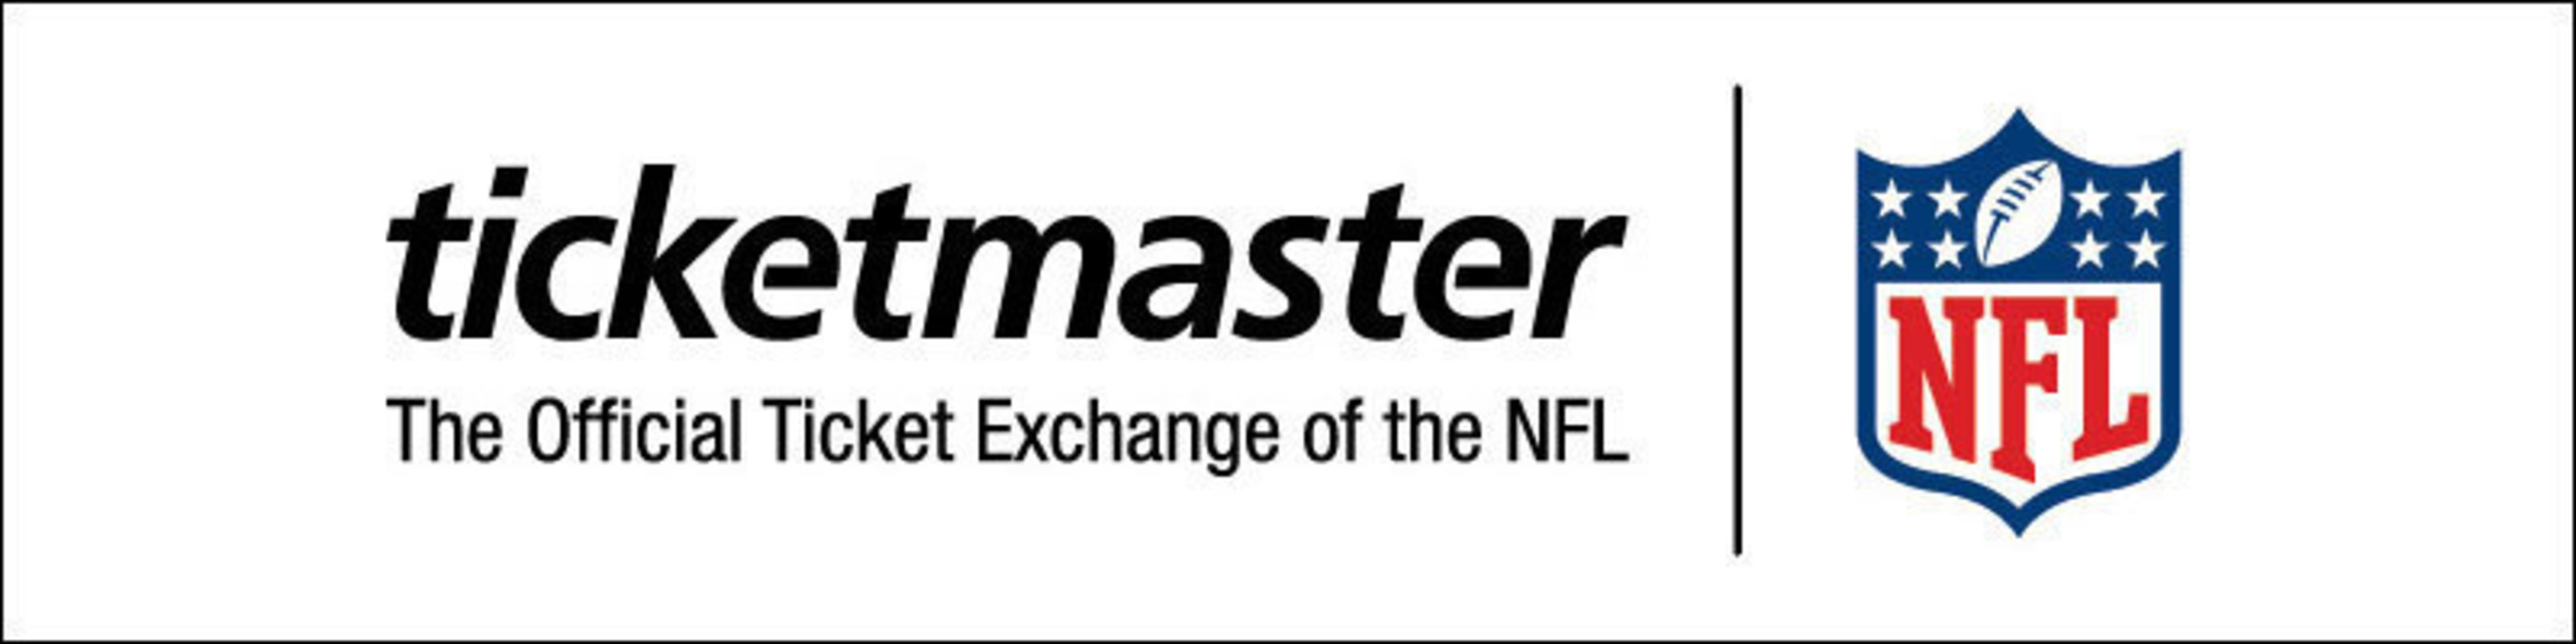 NFL Hall of Fame quarterback Troy Aikman teams with Ticketmaster and NFL Ticket Exchange, the Official Ticket Exchange of the NFL, to help fans avoid counterfiet tickets.